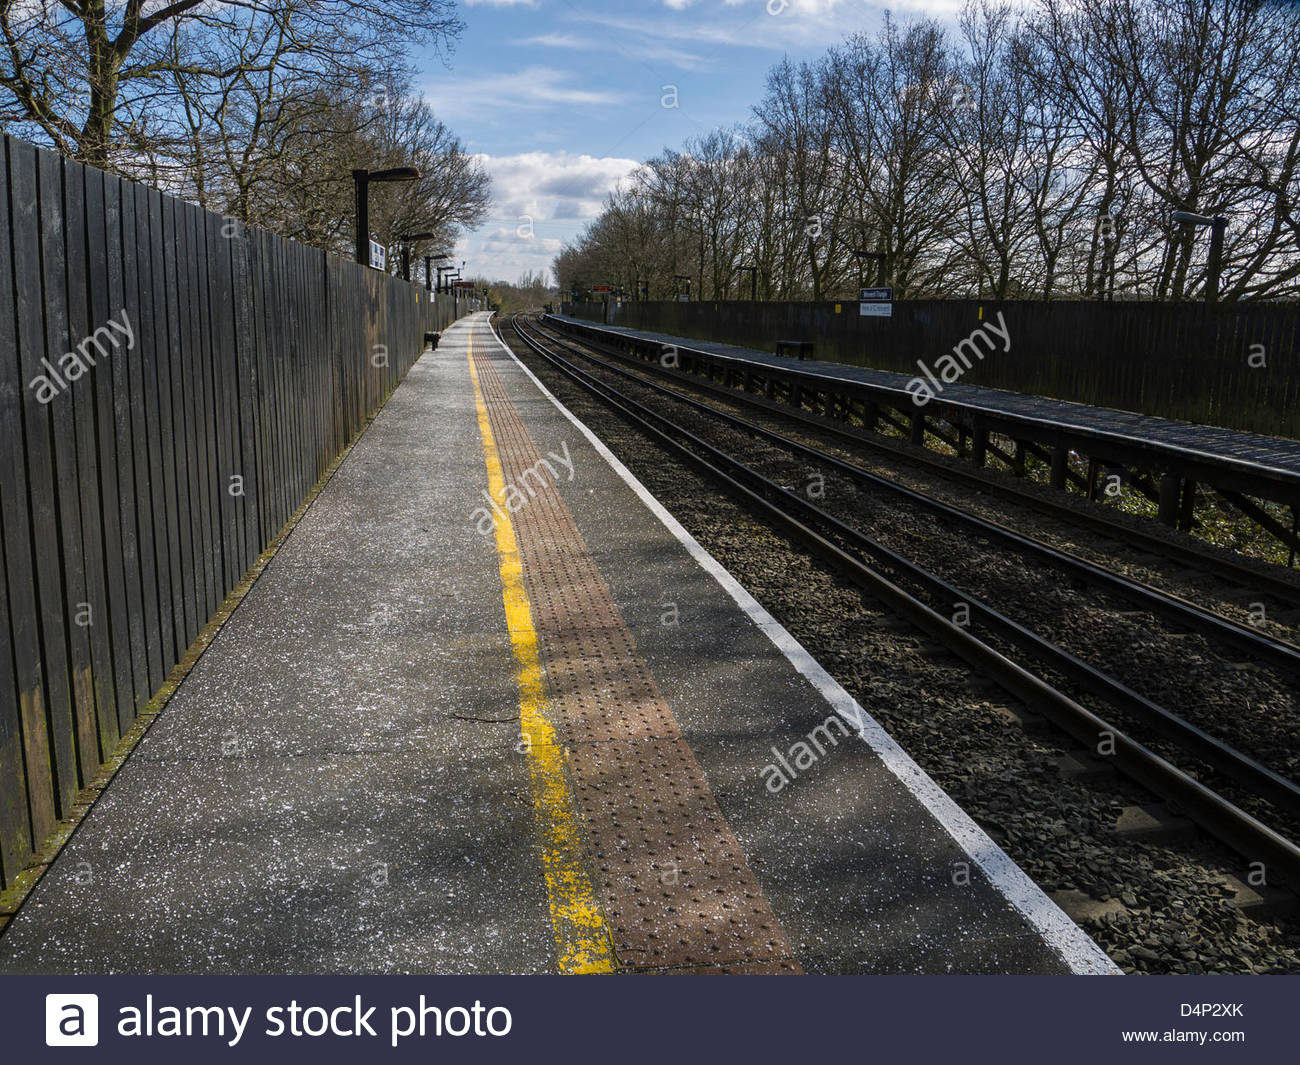 Deserted Railway Station England UK - Stock Image